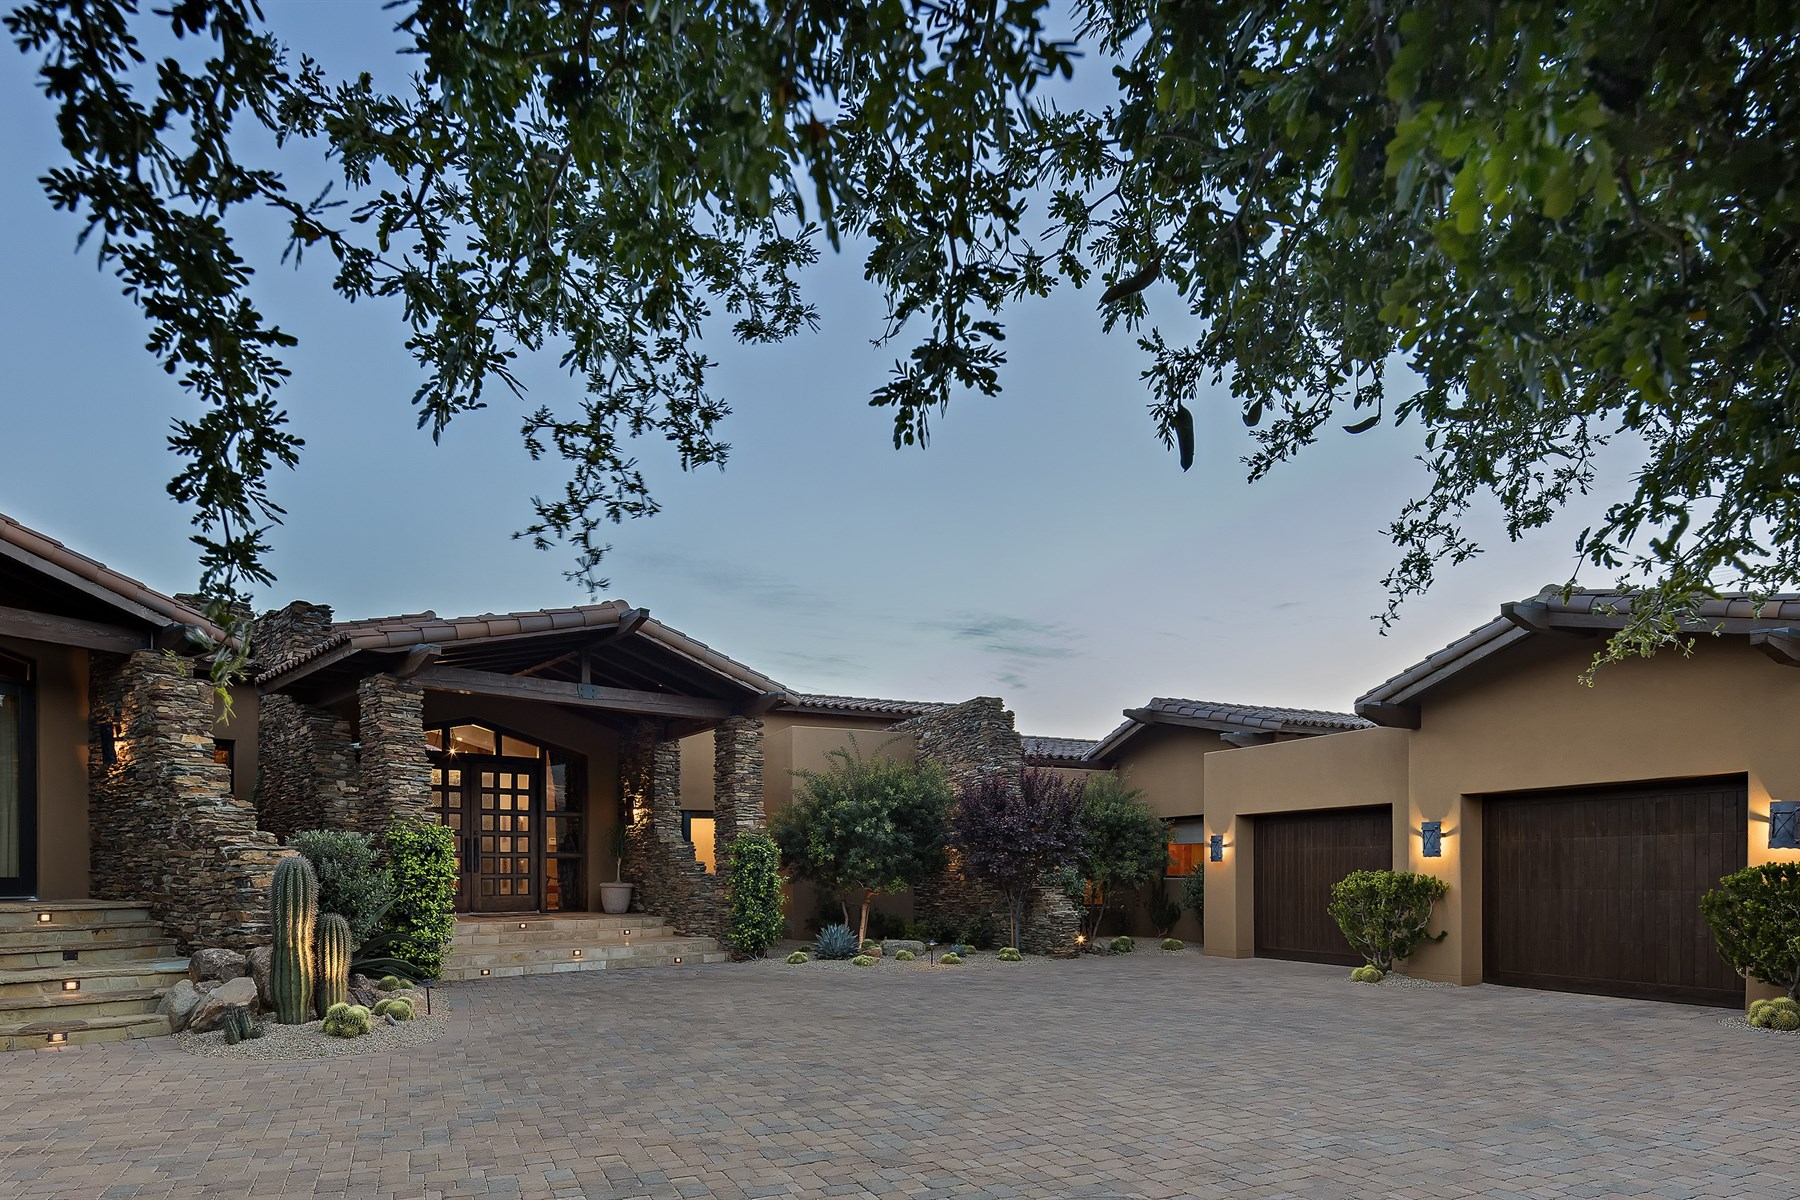 一戸建て のために 売買 アット Truly original home with the finest of finishes on a premier home site 9793 E Falling Star Dr Scottsdale, アリゾナ, 85262 アメリカ合衆国